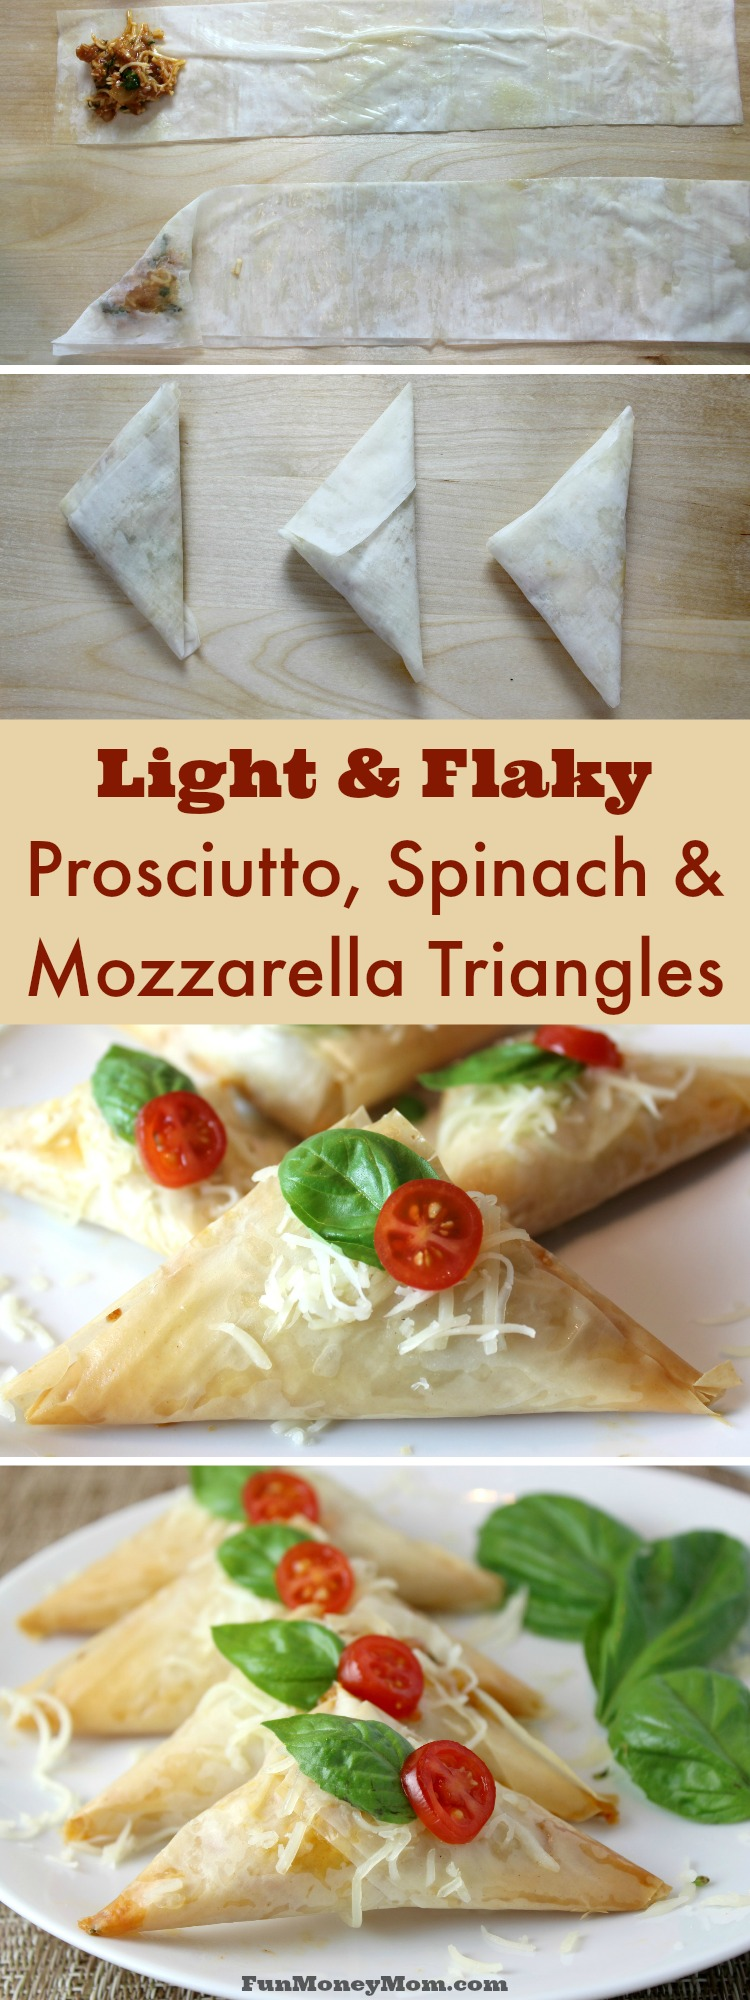 Looking for a great appetizer or party food for your next get-together? This recipe for Prosciutto, Spinach & Mozzarella Triangles will impress your guest for sure!